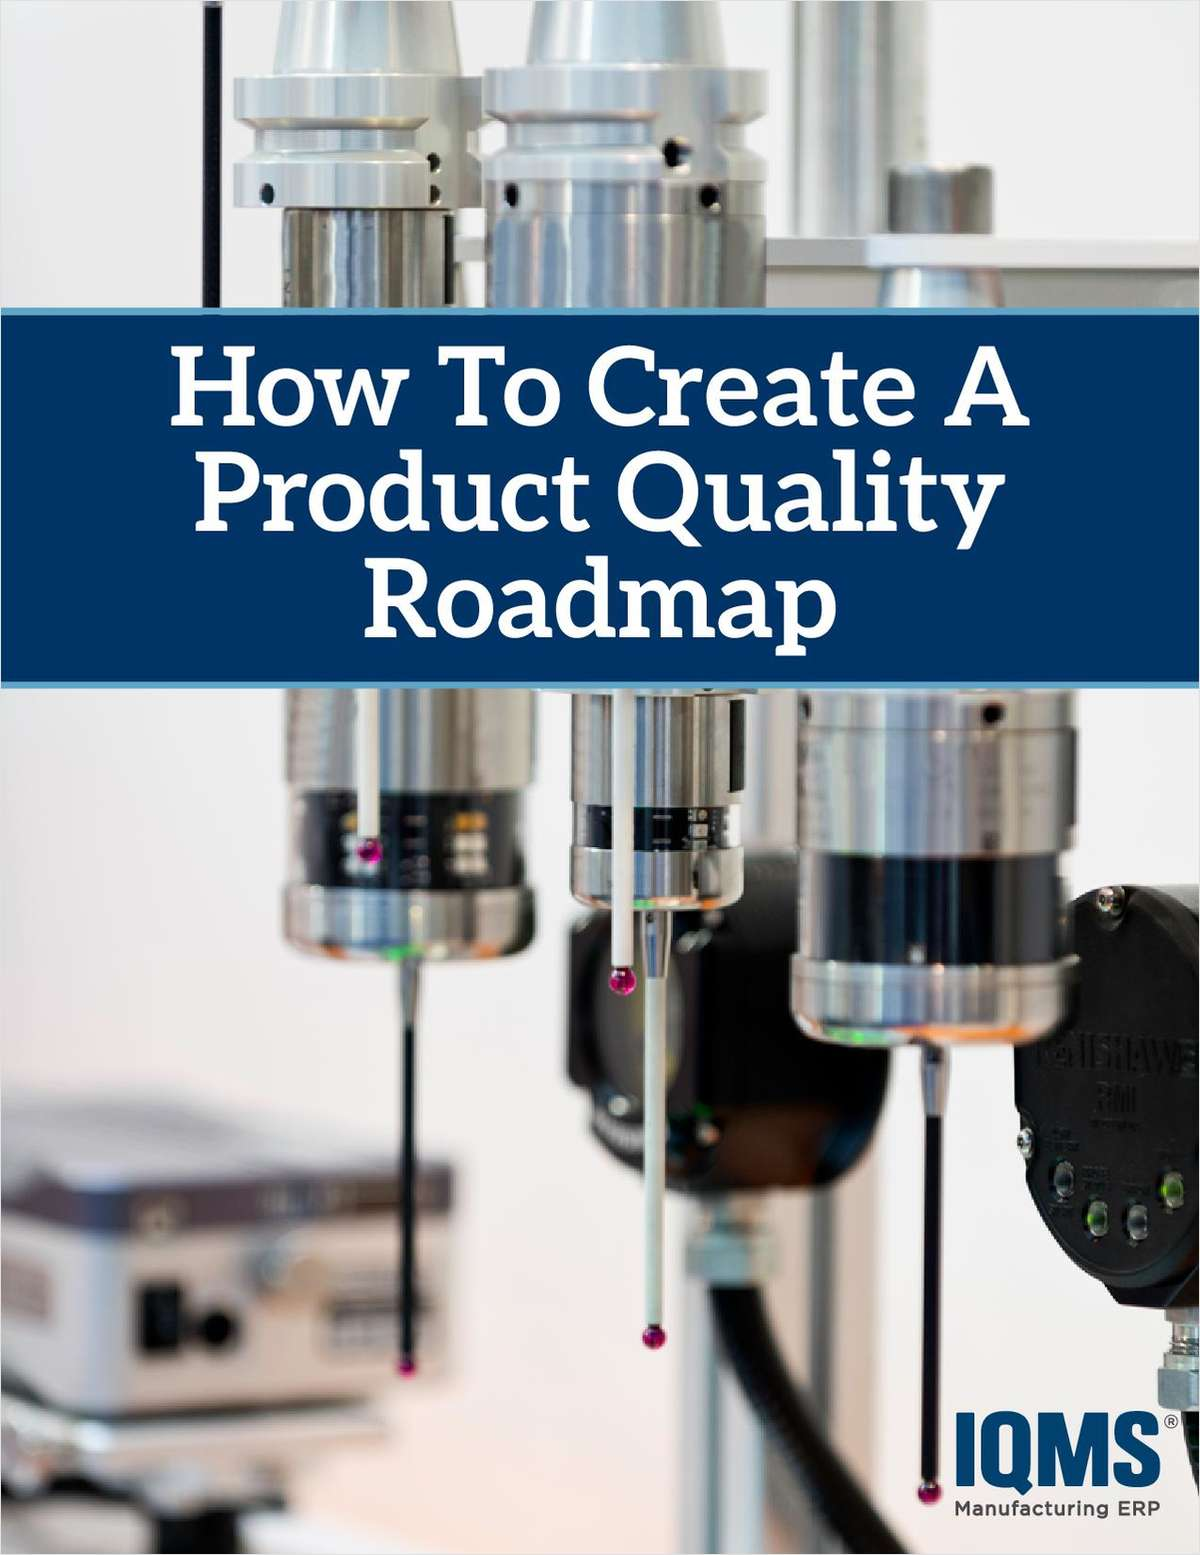 How to Build a Product Quality Roadmap